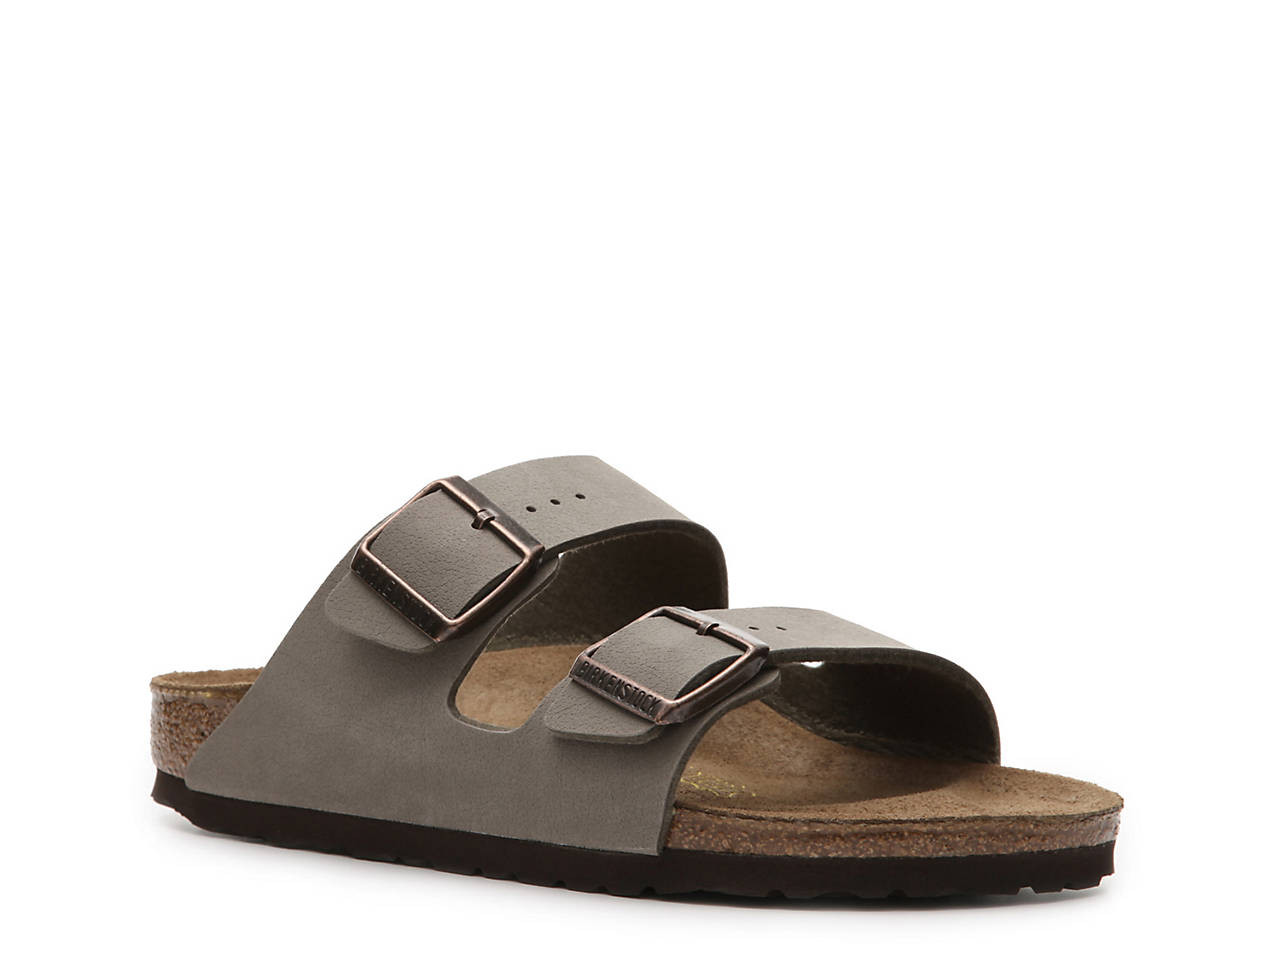 7cc5da7b8c3e Birkenstock Arizona Slide Sandal - Women s Women s Shoes